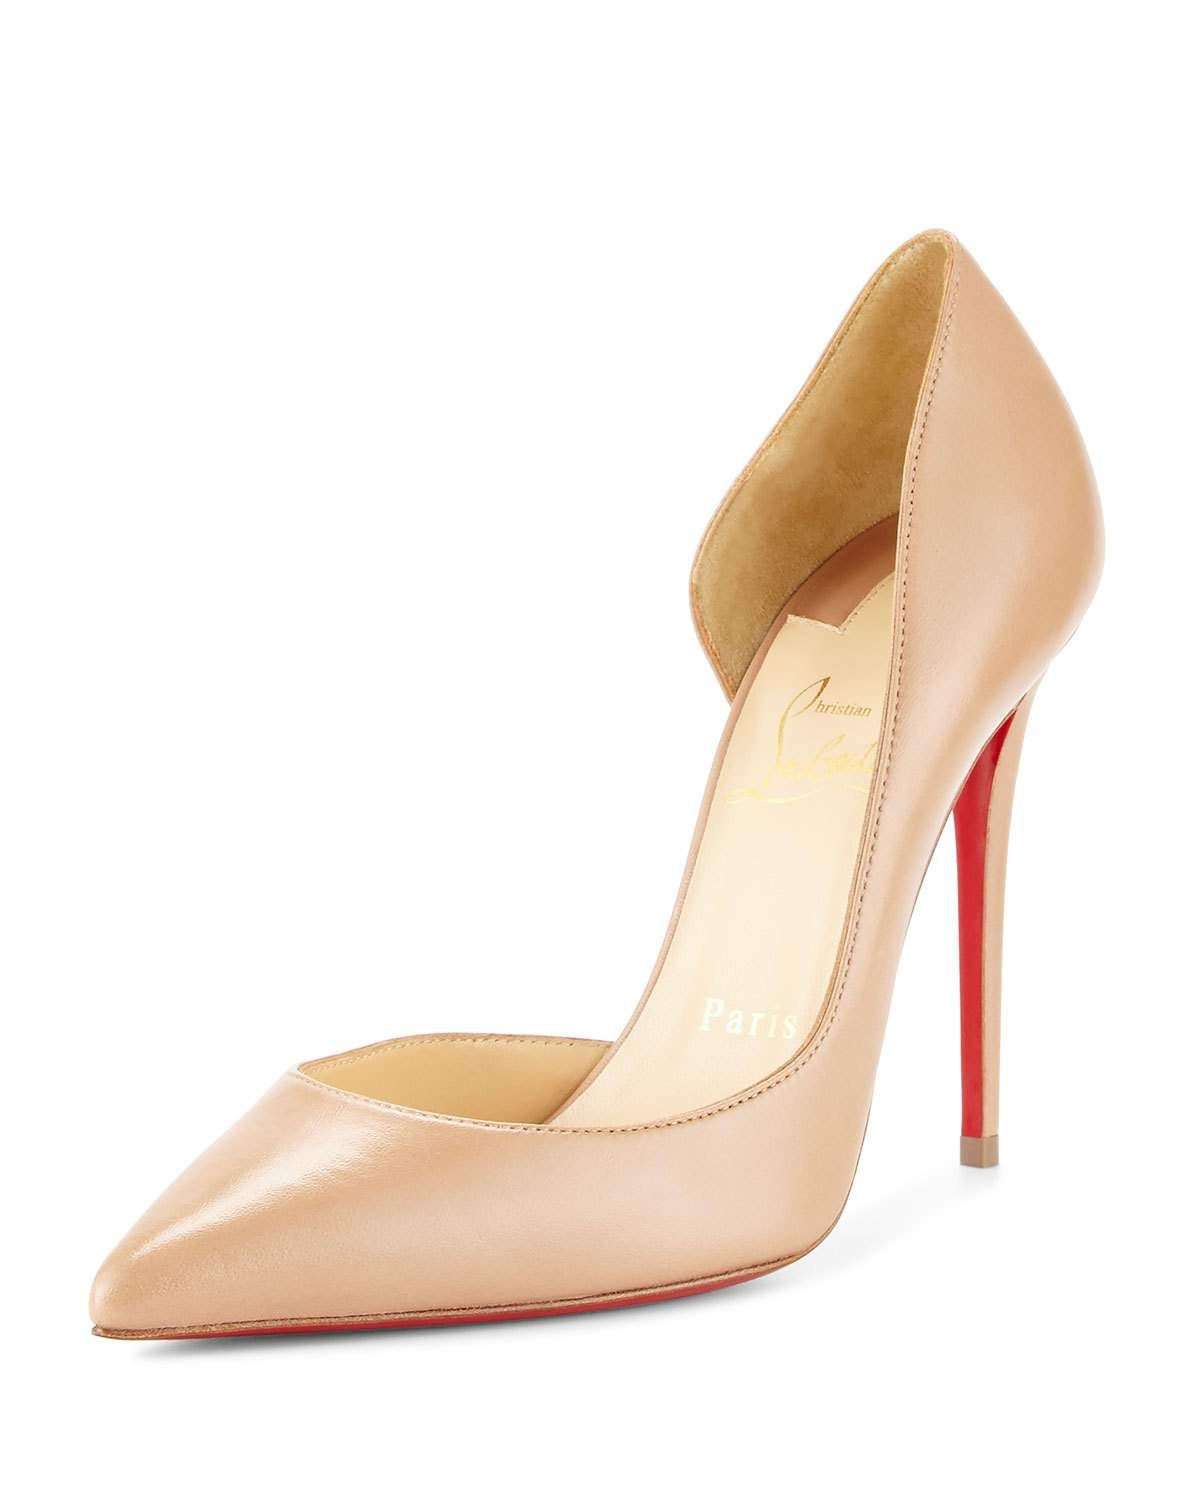 050ab9a097b Iriza Half-d'Orsay 100mm Red Sole Pump in 2019 | Luxe ✨ | Louboutin ...